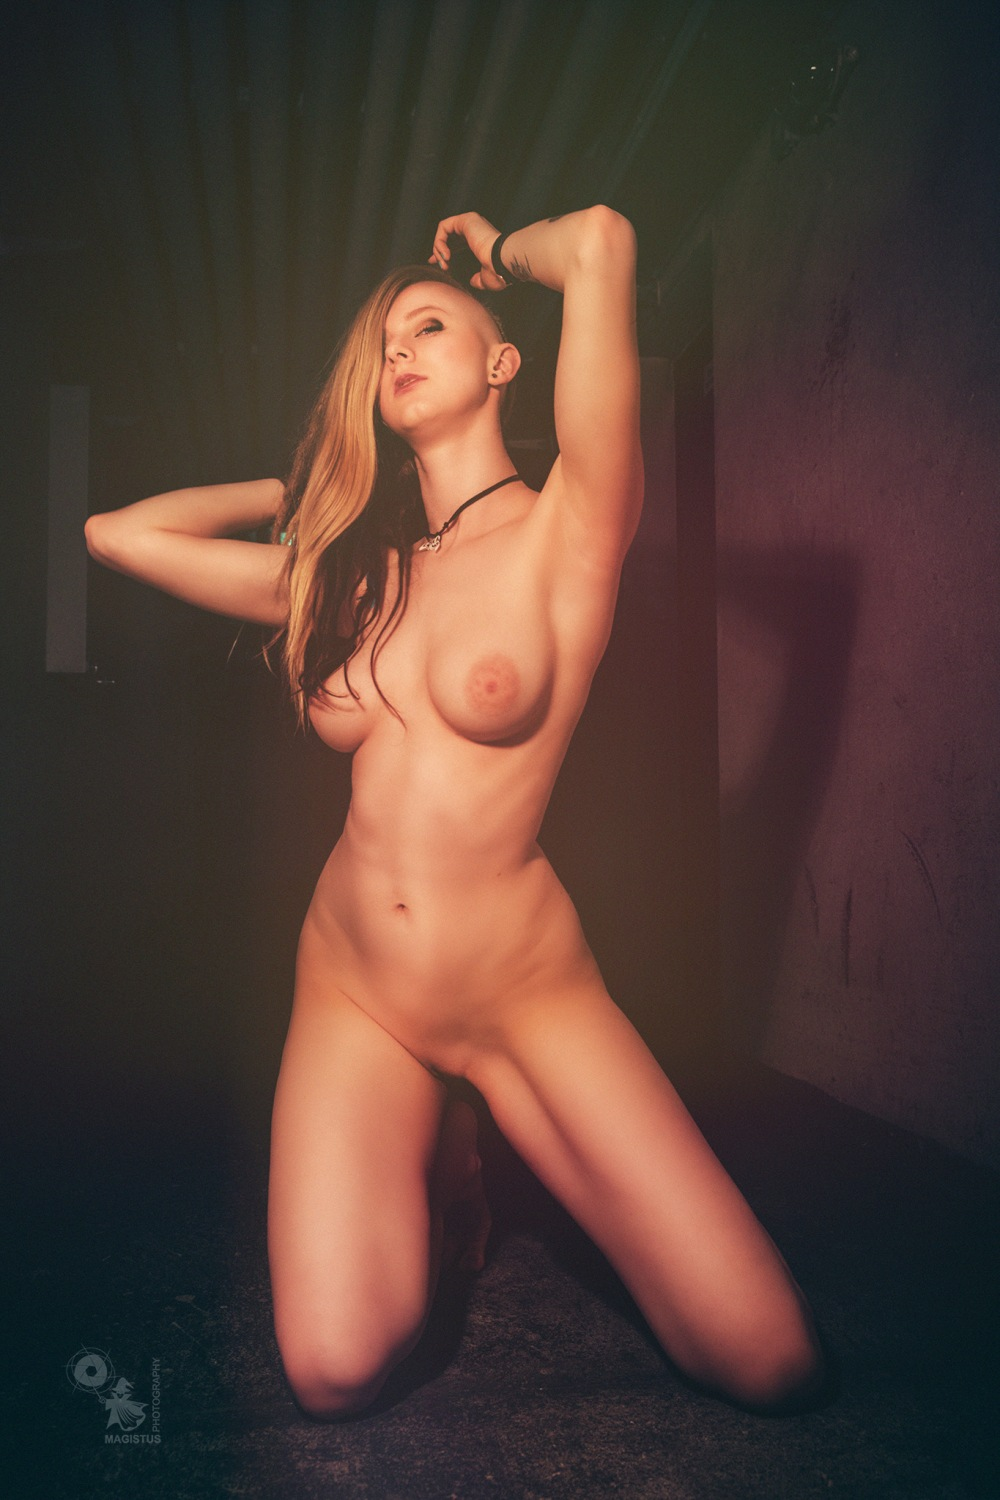 Naked in Dark - super hot and sexy girl is posing fully naked showing her fantastic body and big boobs. - © by Magistus